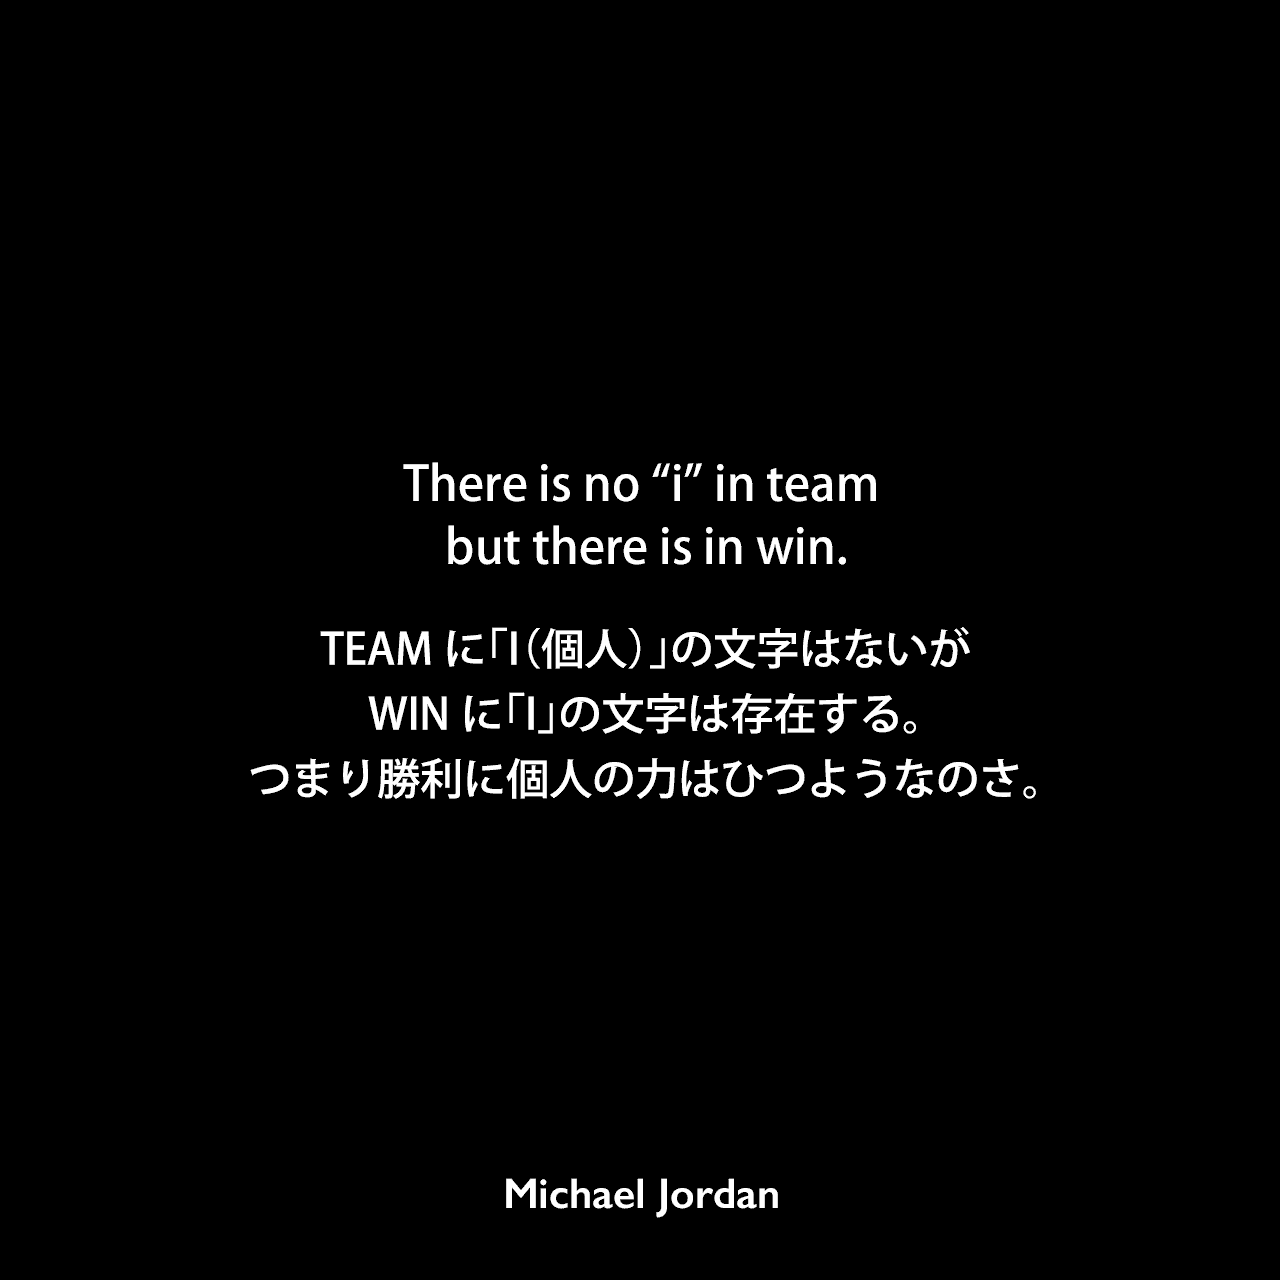 """There is no """"i"""" in team but there is in win.TEAMに「I(個人)」の文字はないが、WINに「I」の文字は存在する。つまり勝利に個人の力はひつようなのさ。Michael Jordan"""